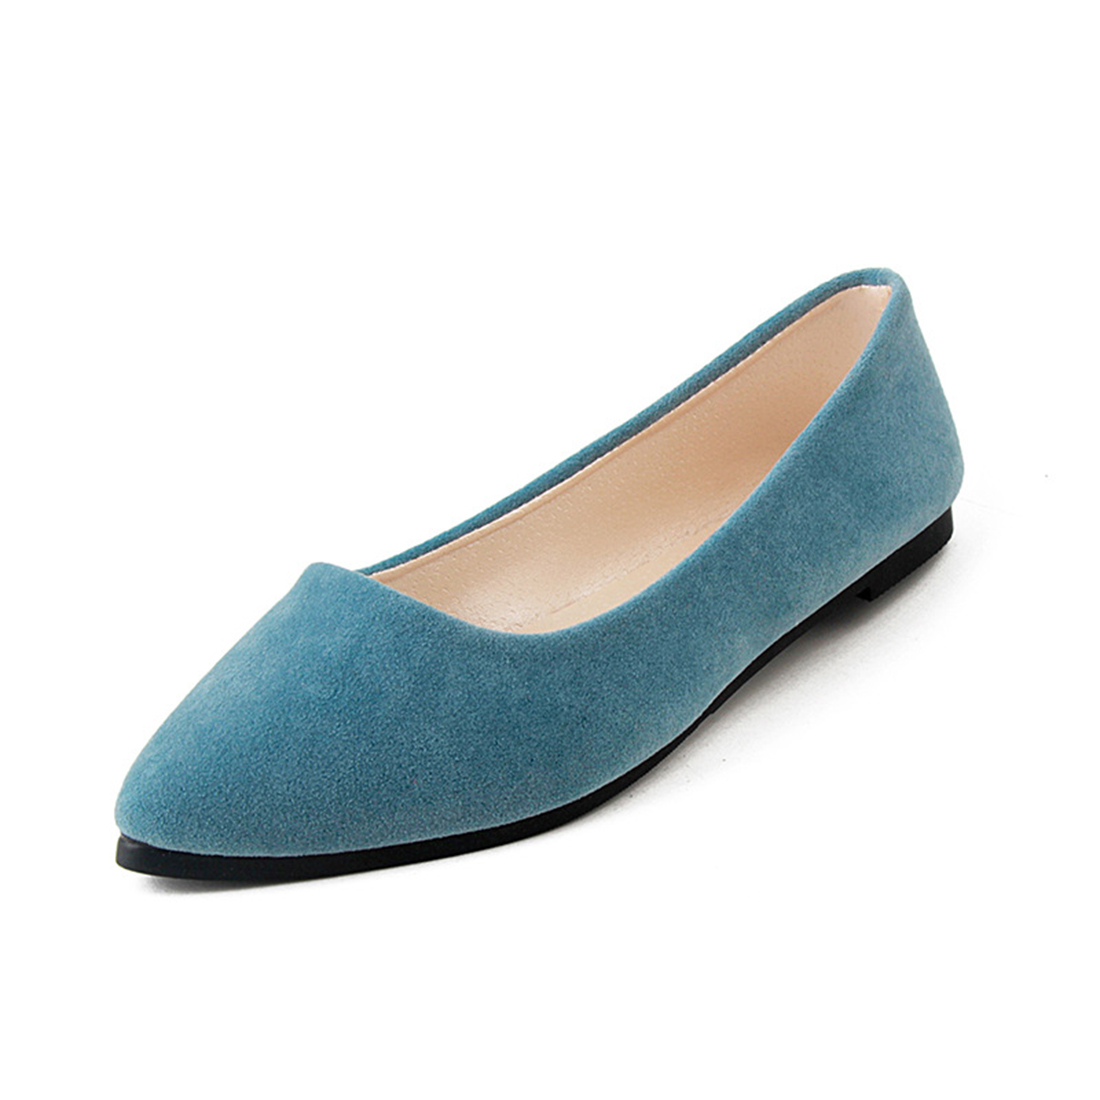 2017 Spring New Women Solid Slip On Casual Shoes Comfortable Pointed Toe Female Flat Shoes Woman Loafers Plus Size 40 women flats slip on casual shoes 2017 summer fashion new comfortable flock pointed toe flat shoes woman work loafers plus size